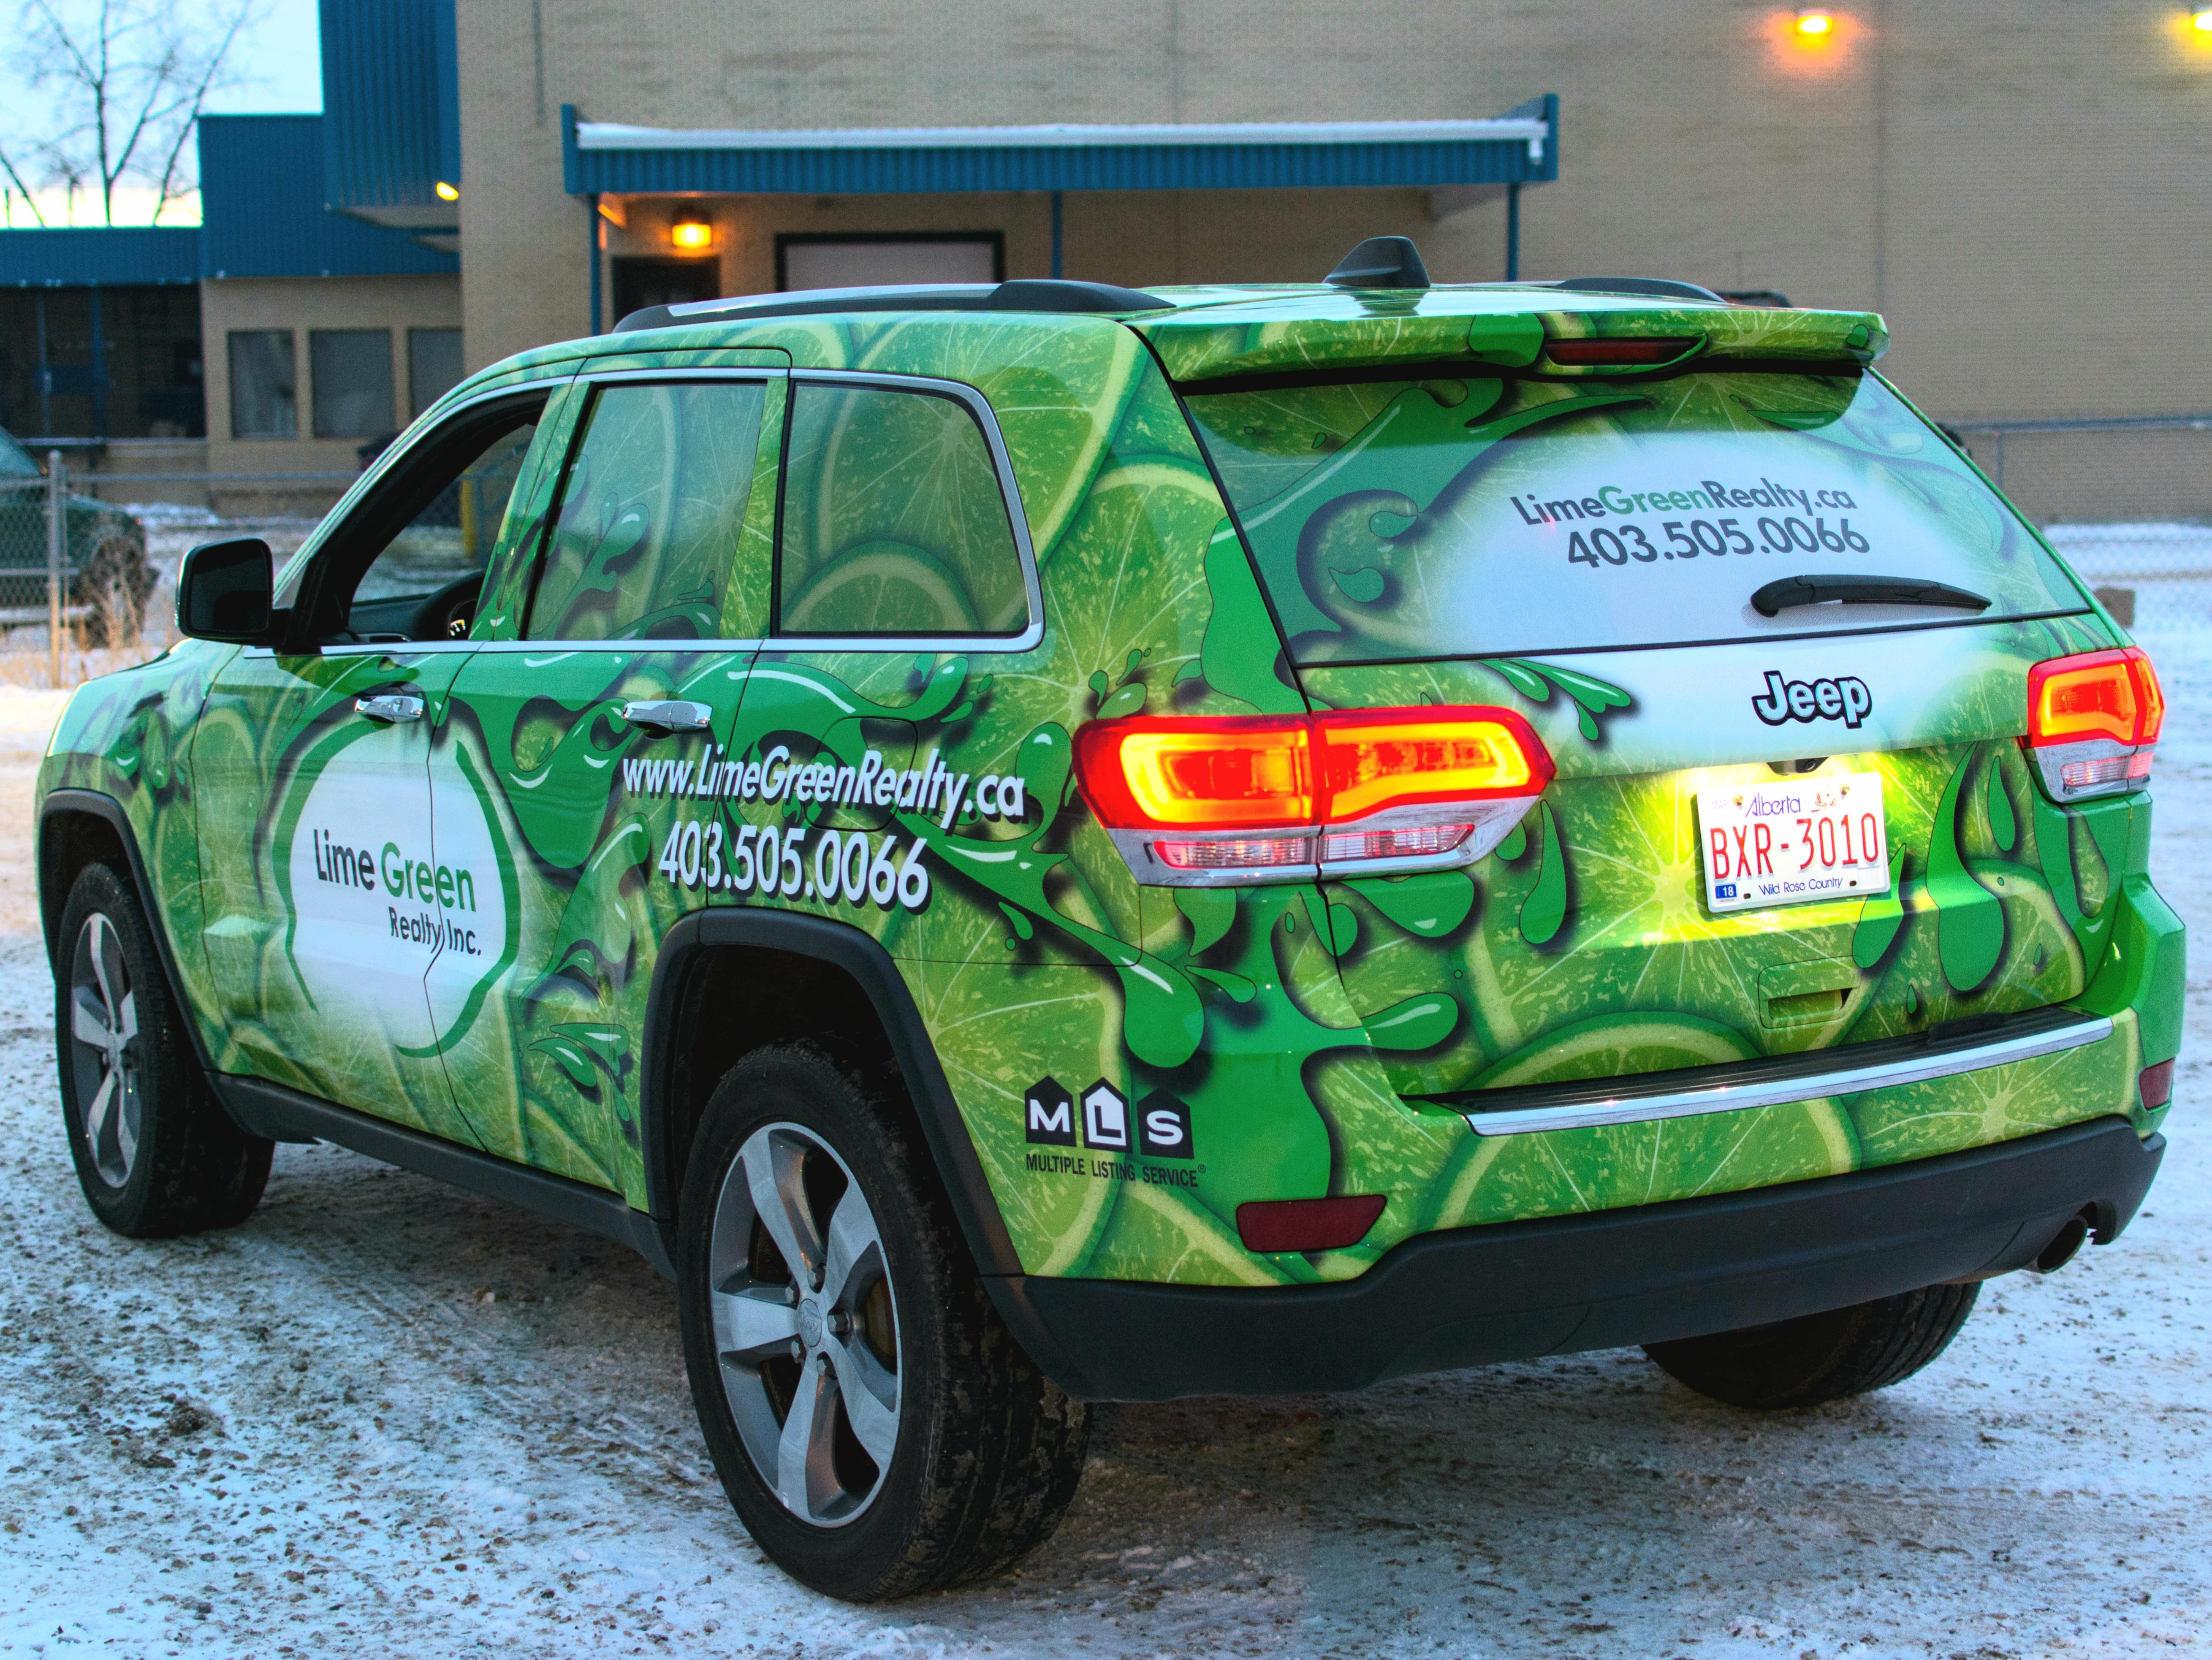 Lime Green Realty full vehicle wrap.